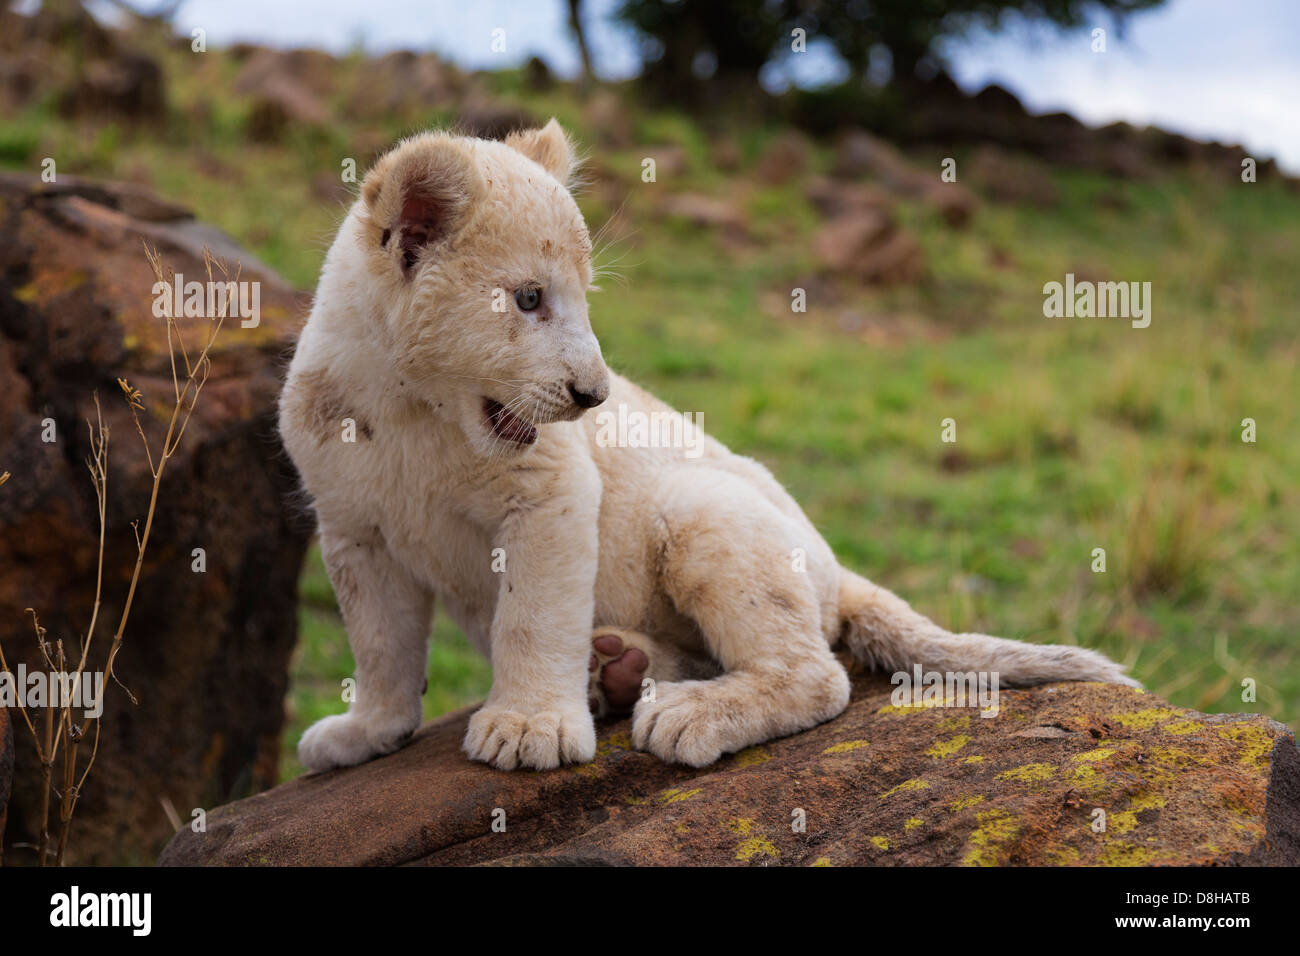 White Lion cub sitting on a rock - Stock Image